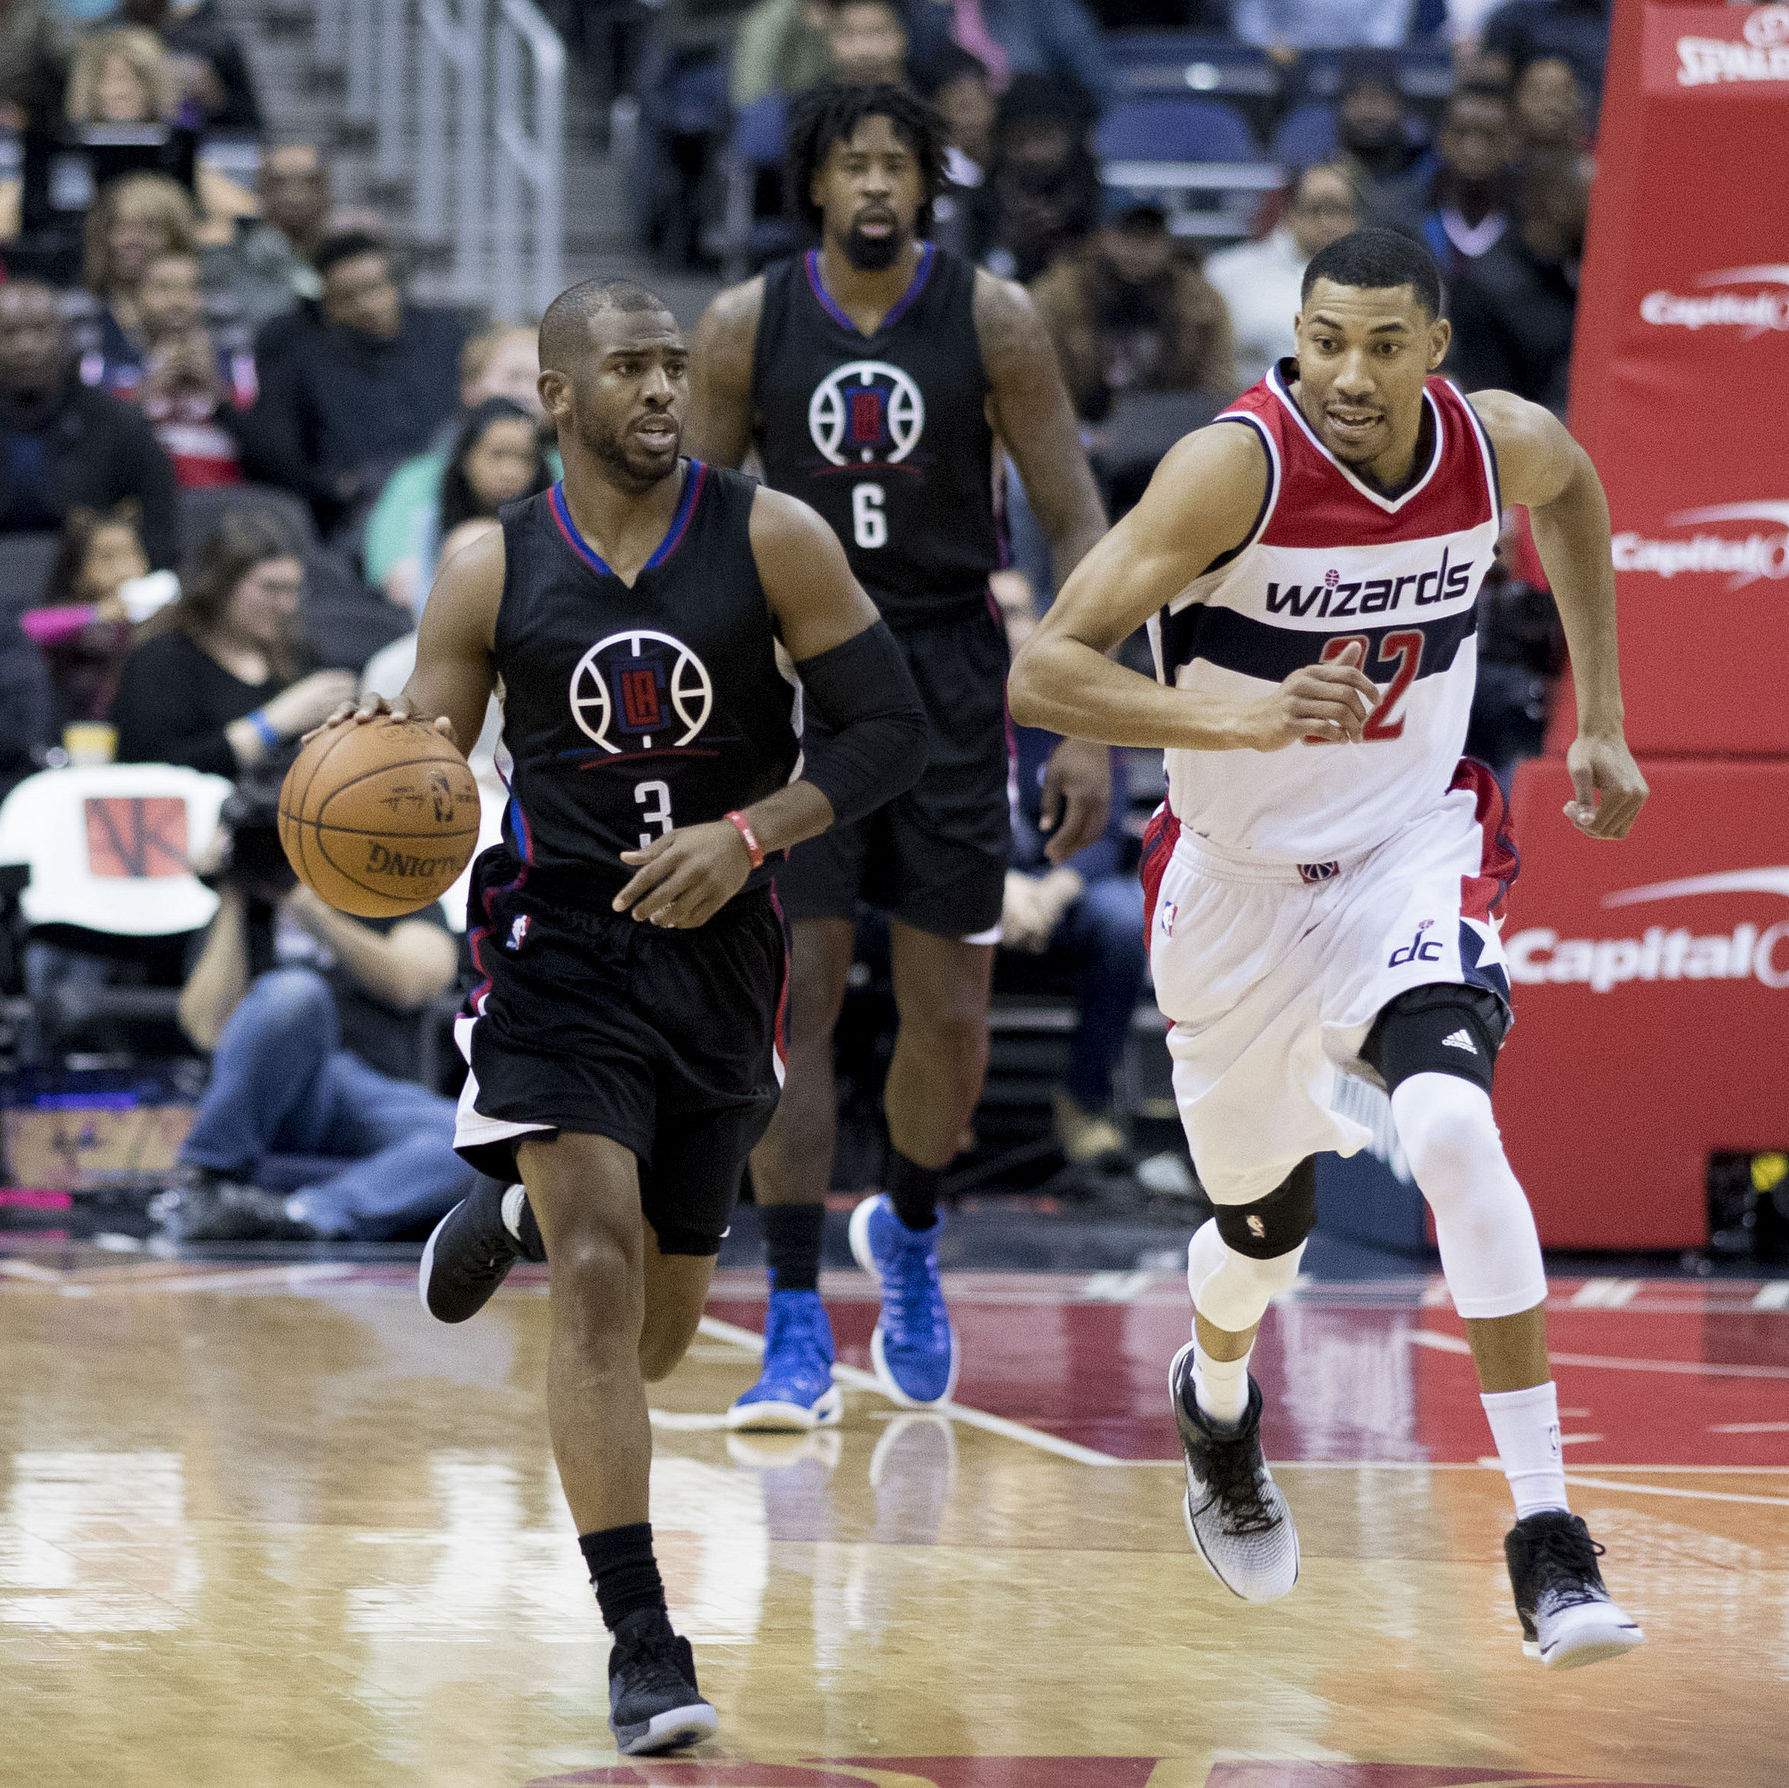 La clippers chris paul new houston rockets lckdkw